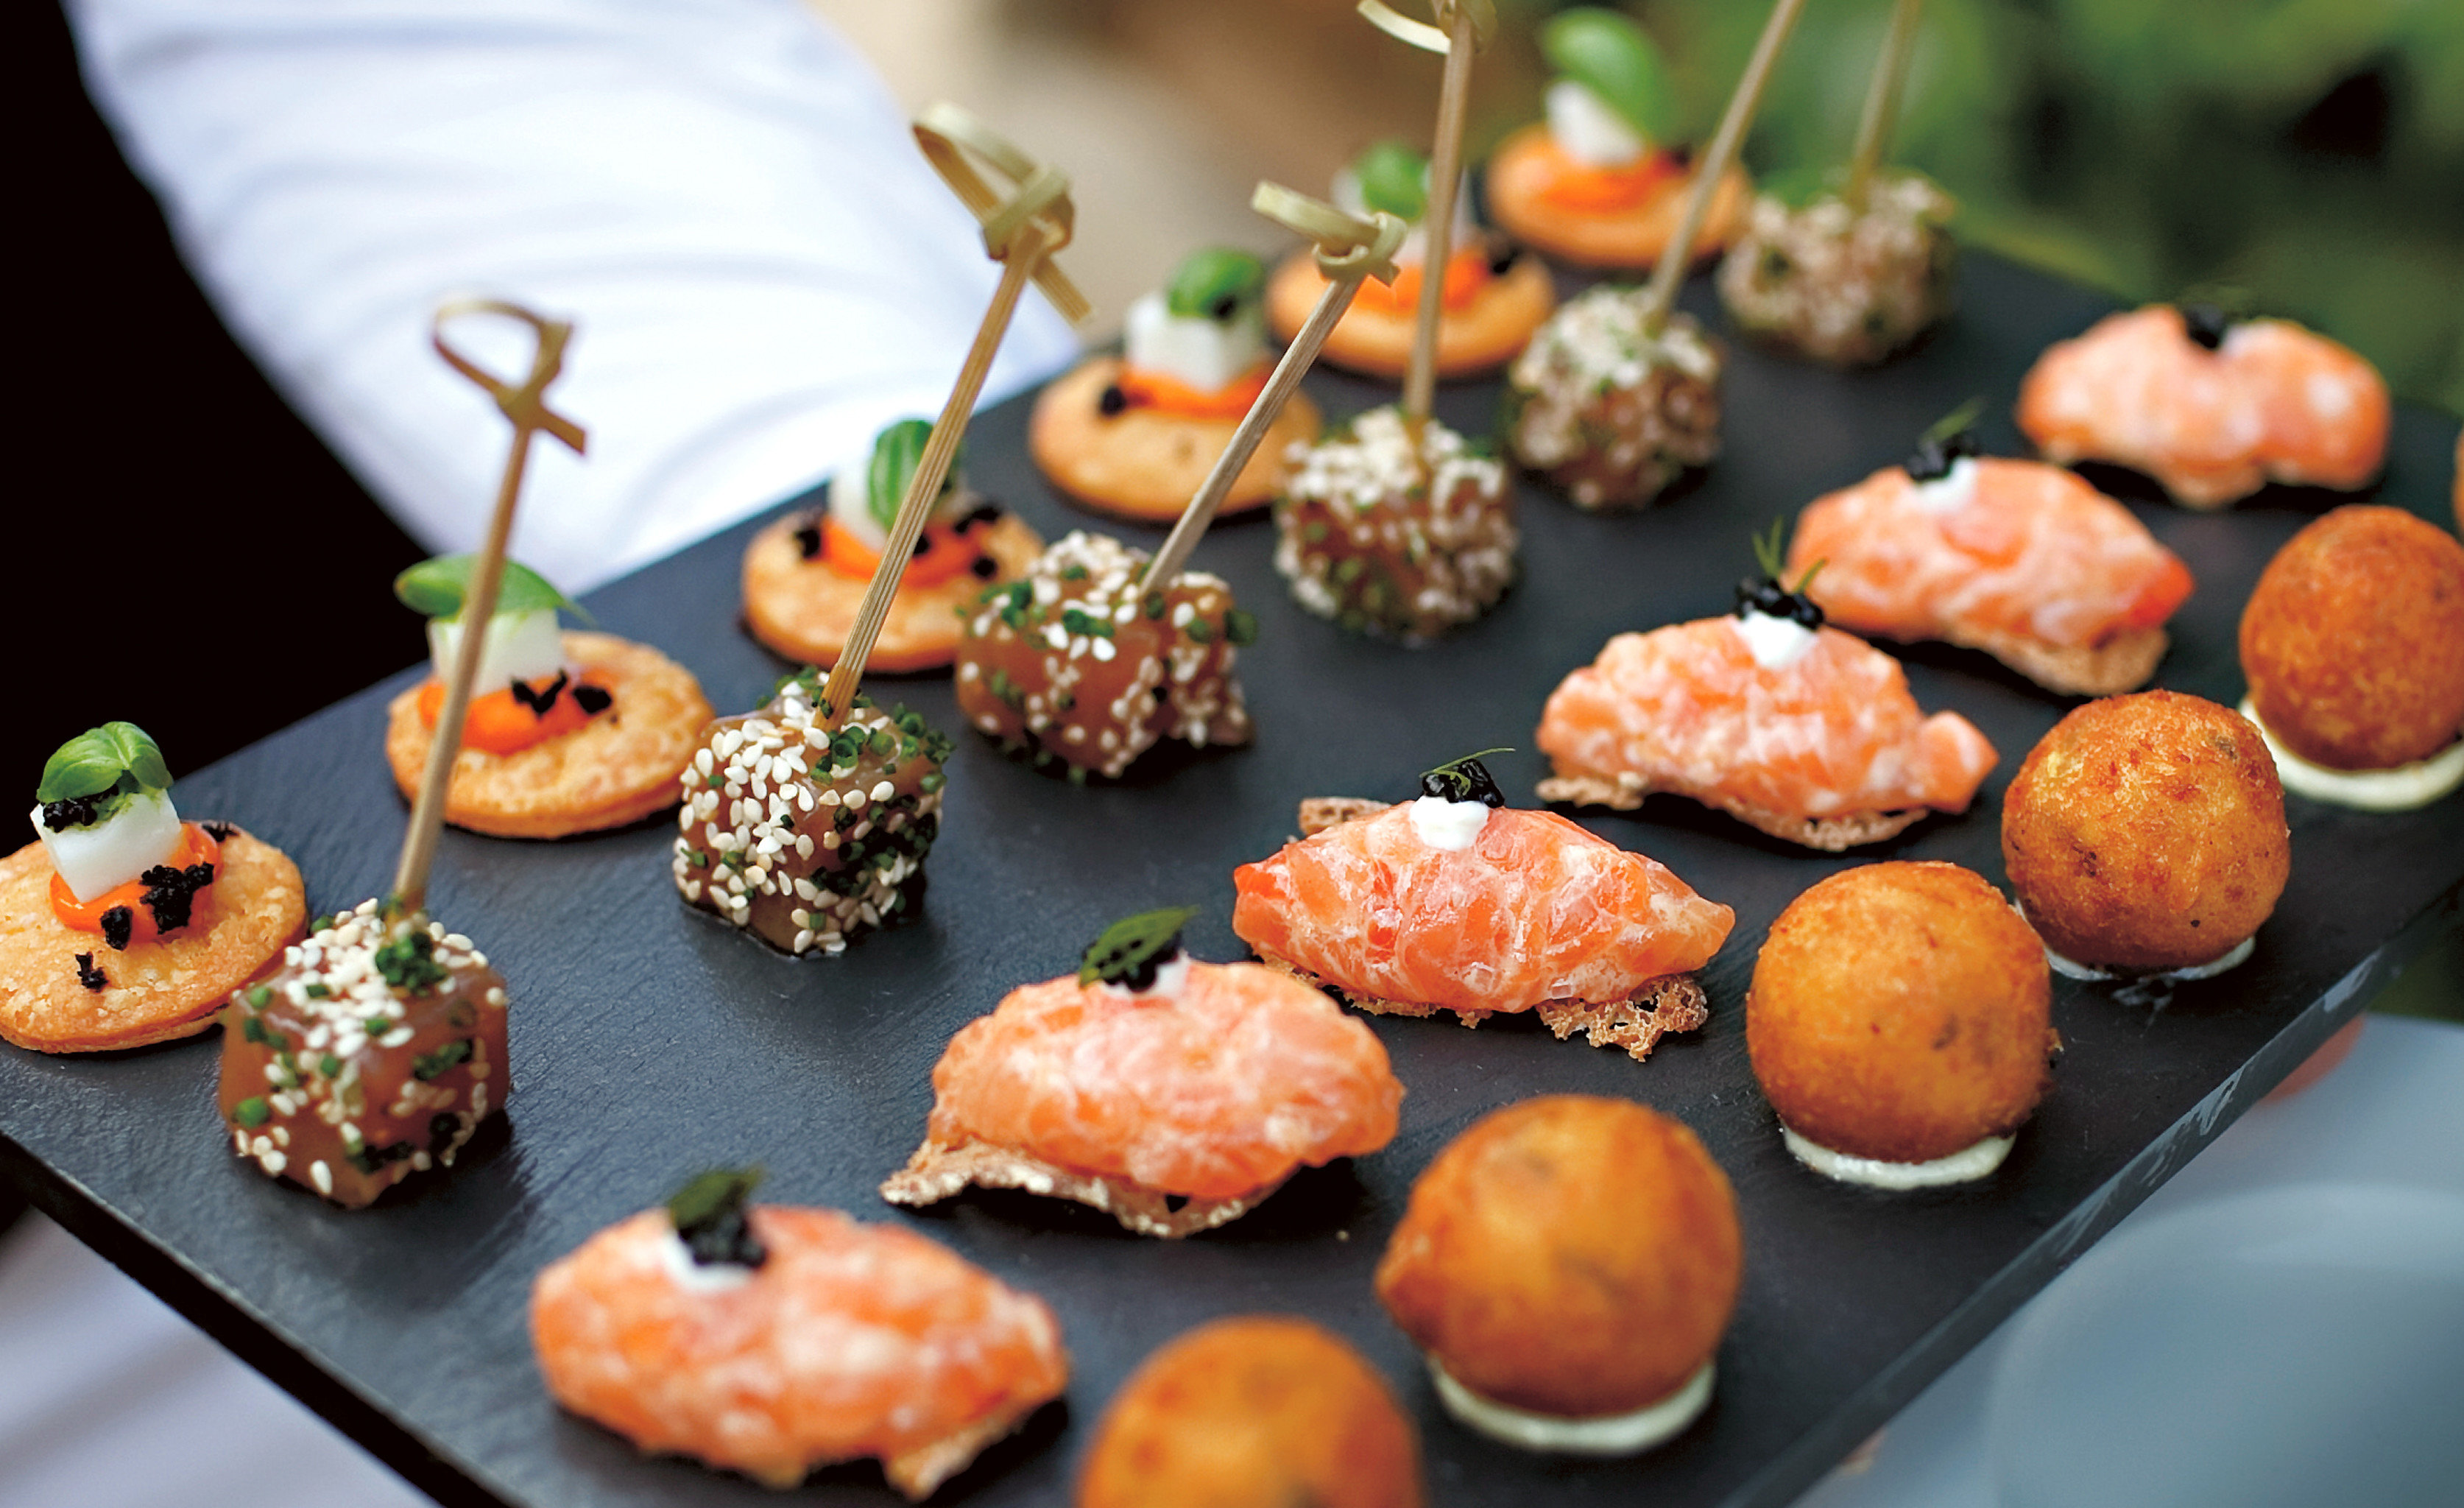 Dining Eat Luxury Resort food hors d oeuvre cuisine asian food meat